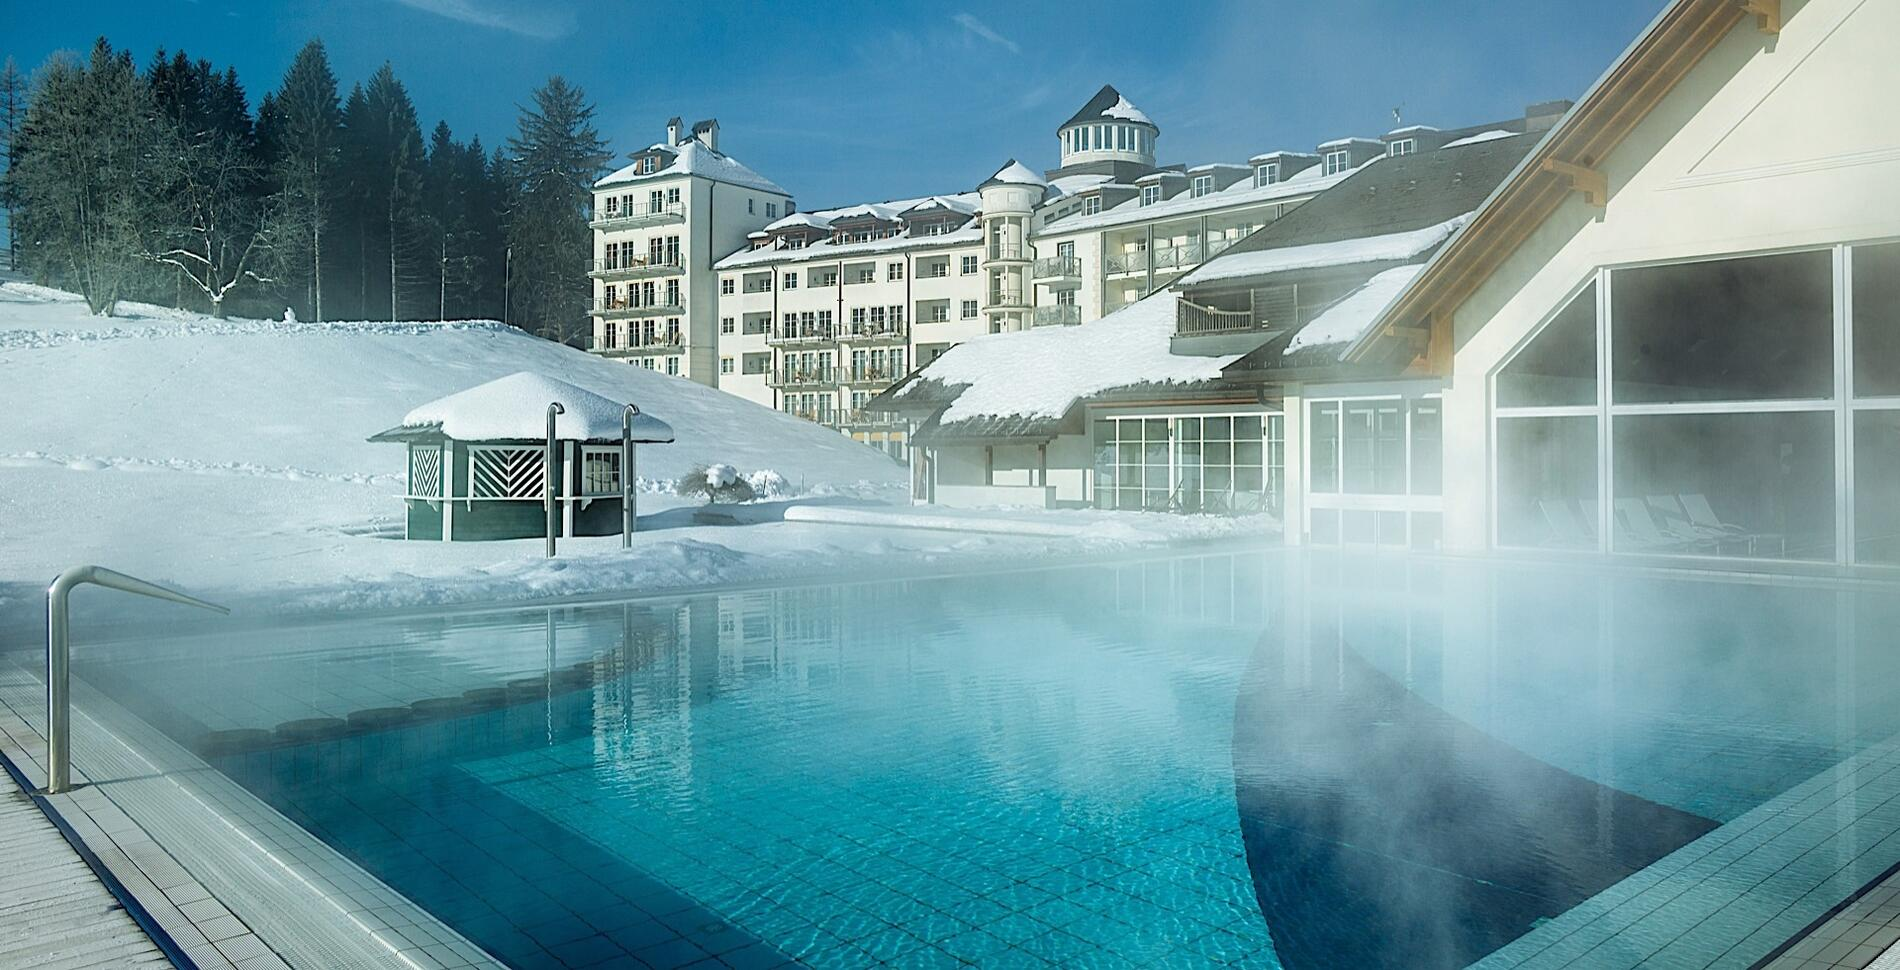 Outdoor Pool at Romantik Hotel Schloss Pichlarn, Austria